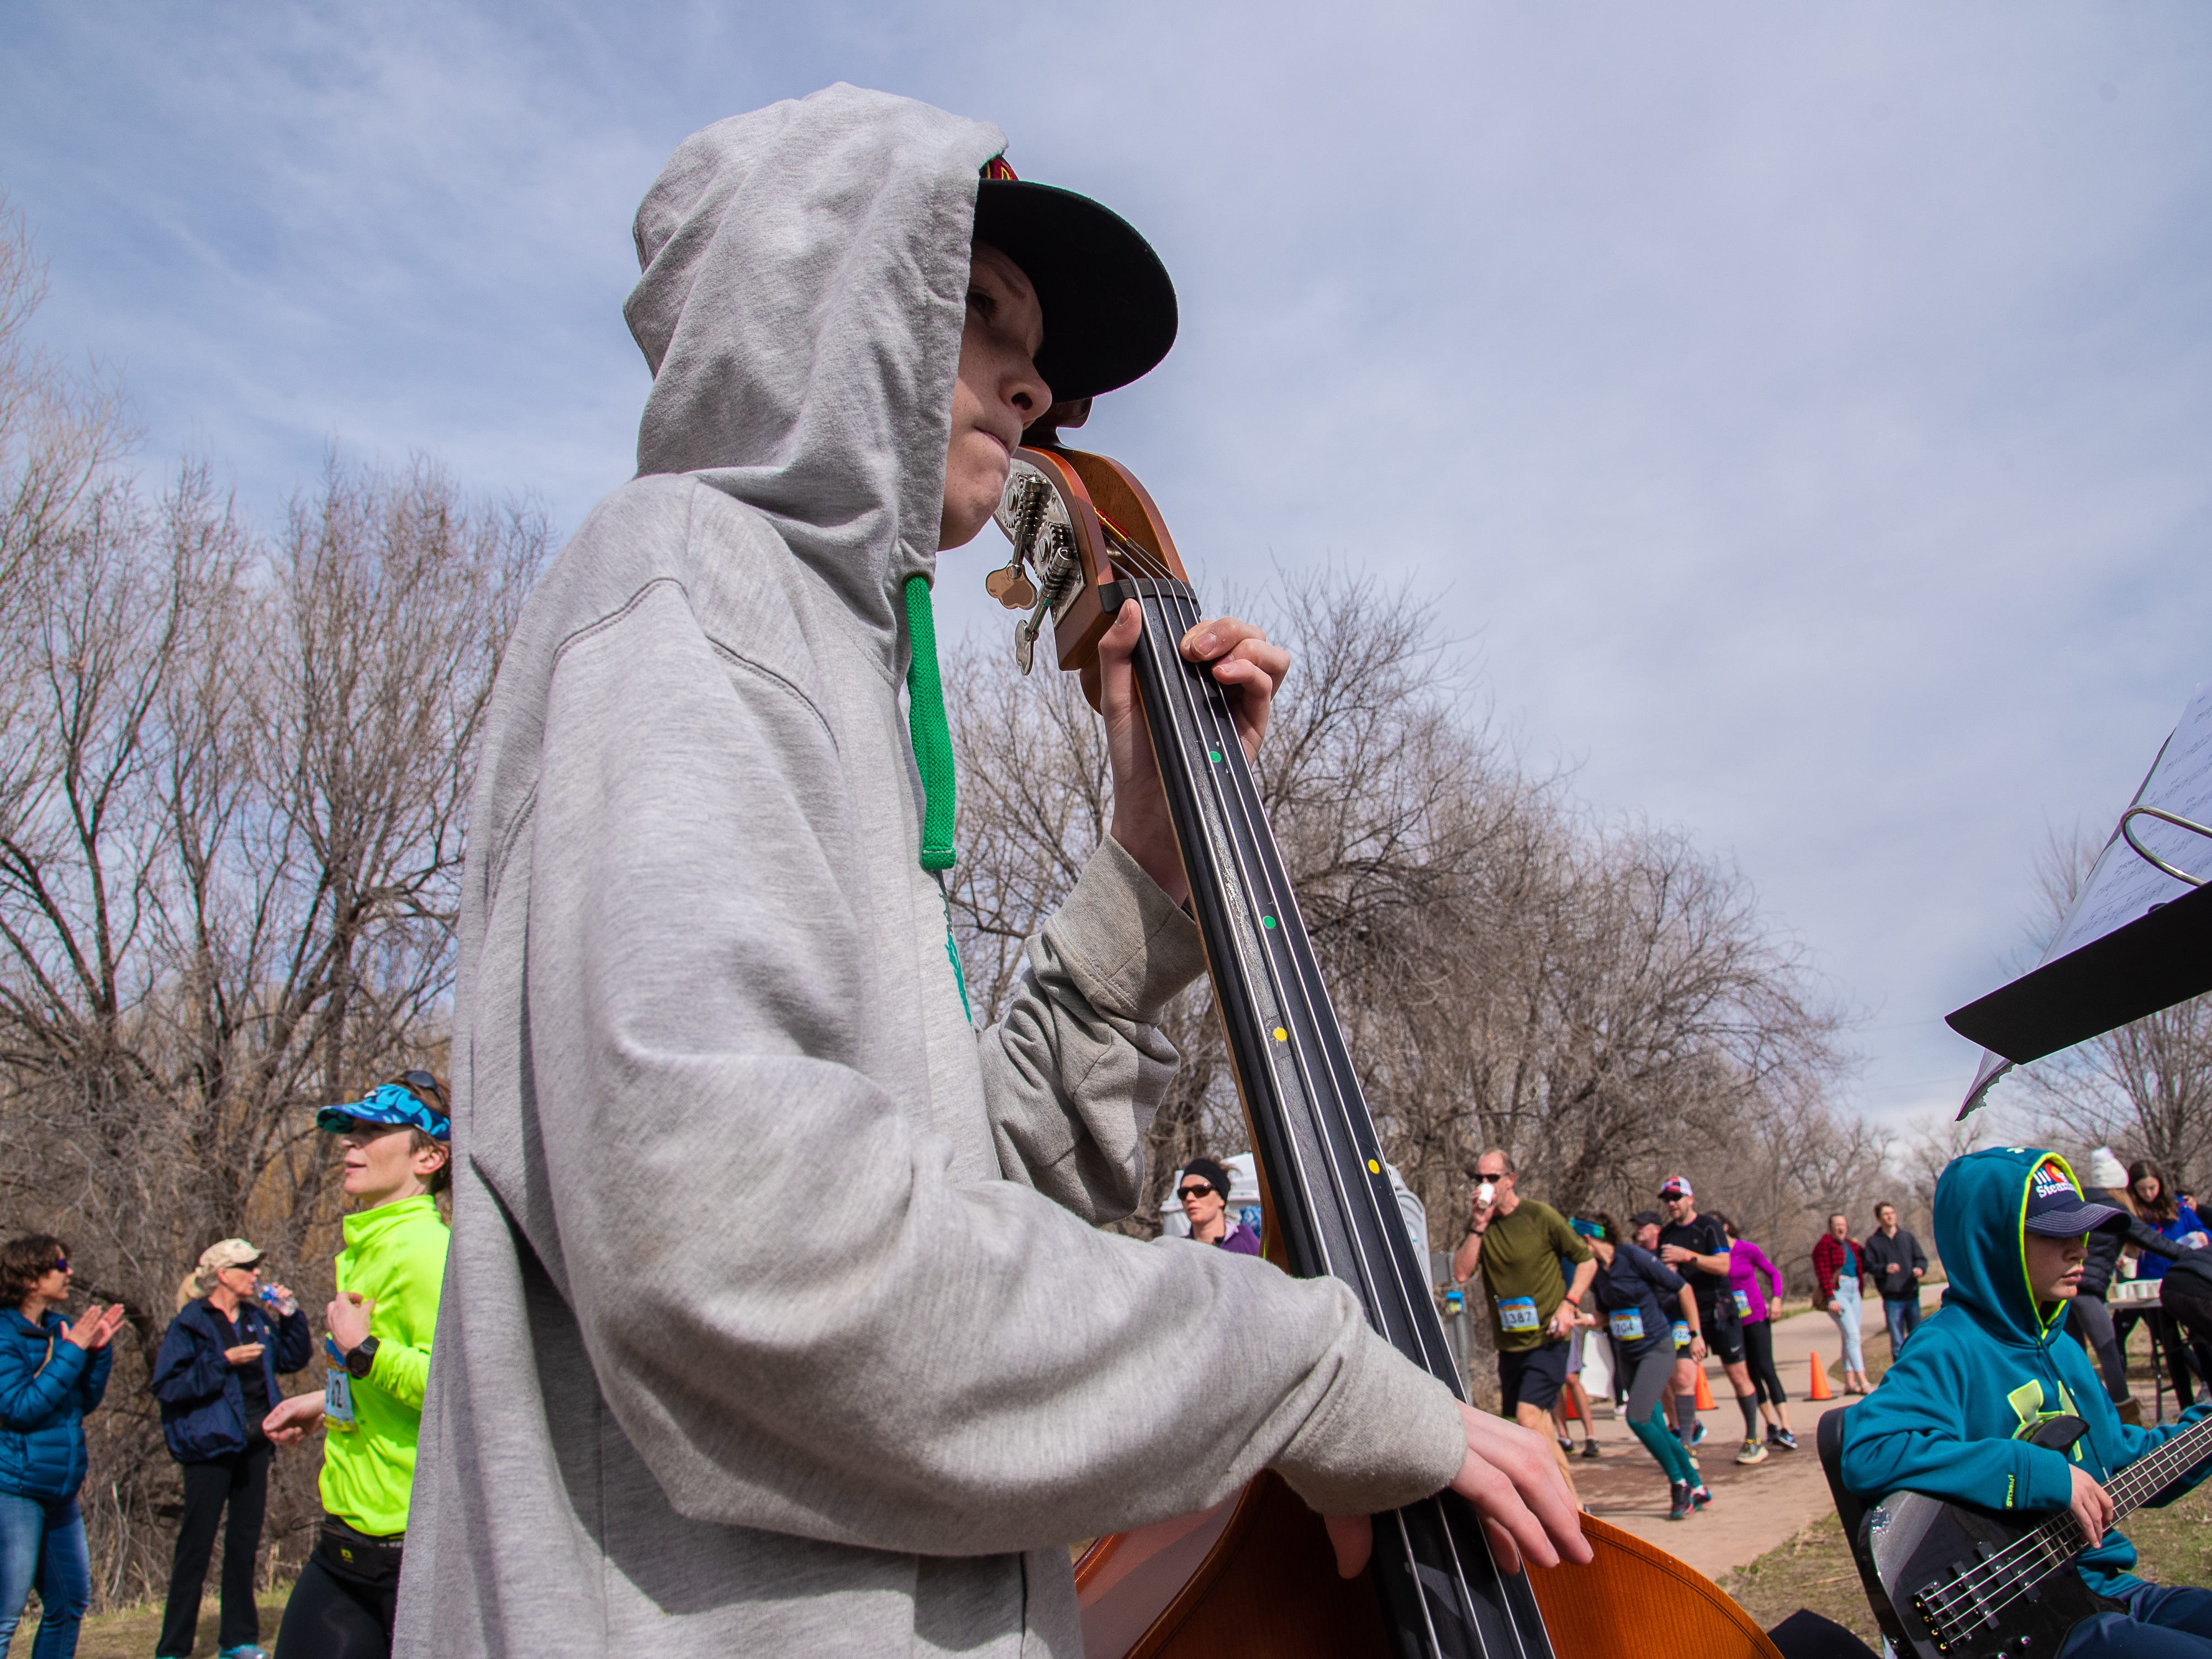 Participants pass through Lyons Park during the Horsetooth Half Marathon on Sunday, April 14, 2019, in Fort Collins, Colo. The Blevins Middle School Jazz Band entertained runners as they passed by a first aid station.